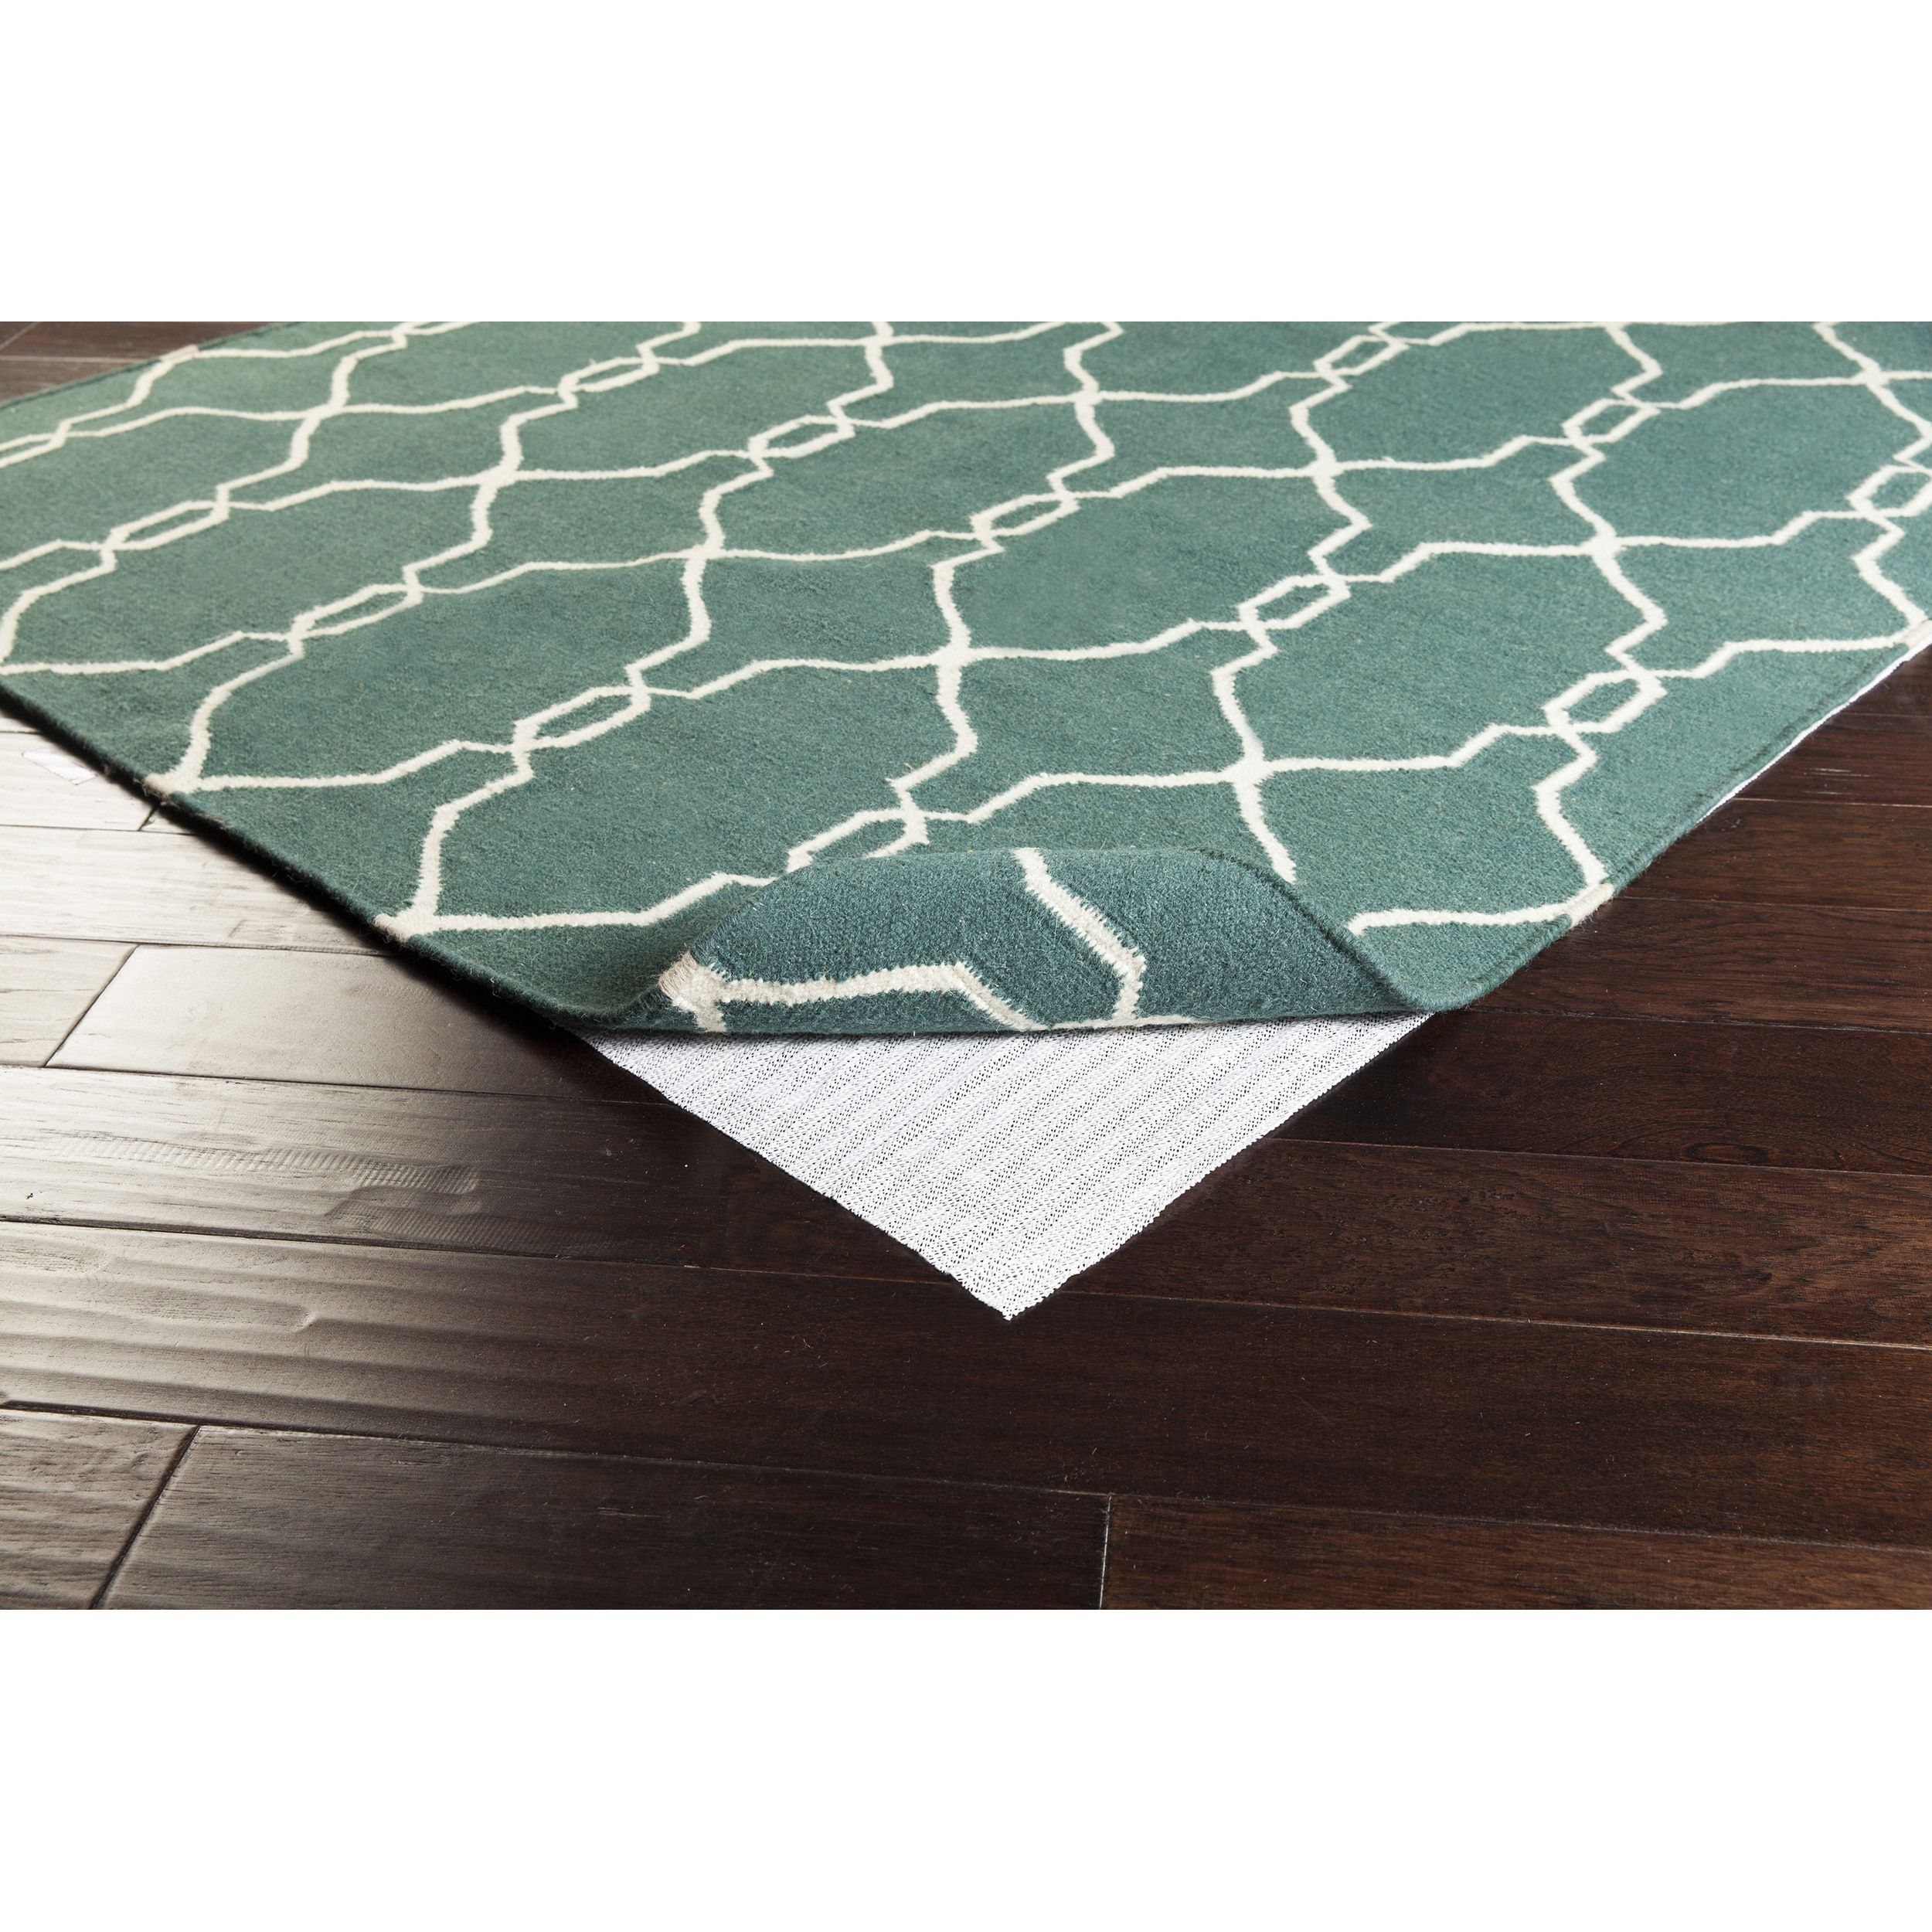 Ultra Secure Lock Grip Reversible Hard Surface Non Slip Rug Pad